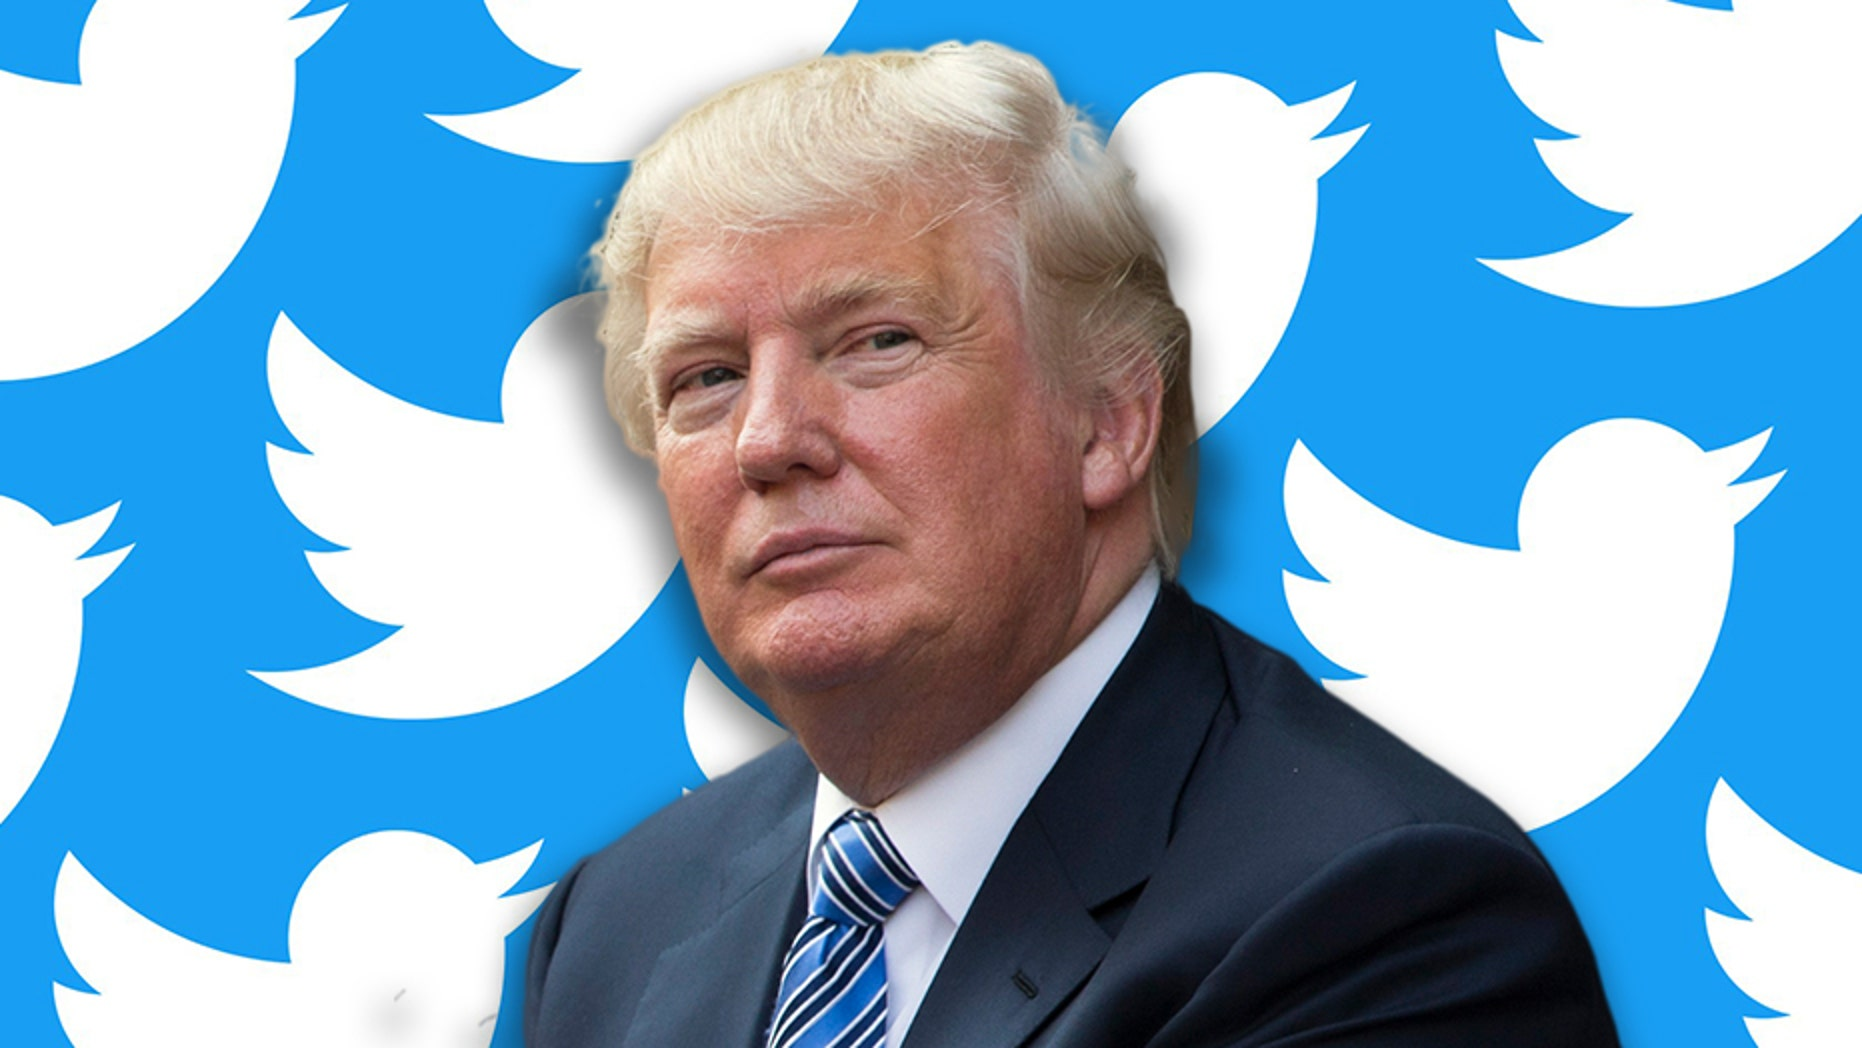 President Trump took to Twitter to blast the social media platform over the reported practice of 'shadow banning.'